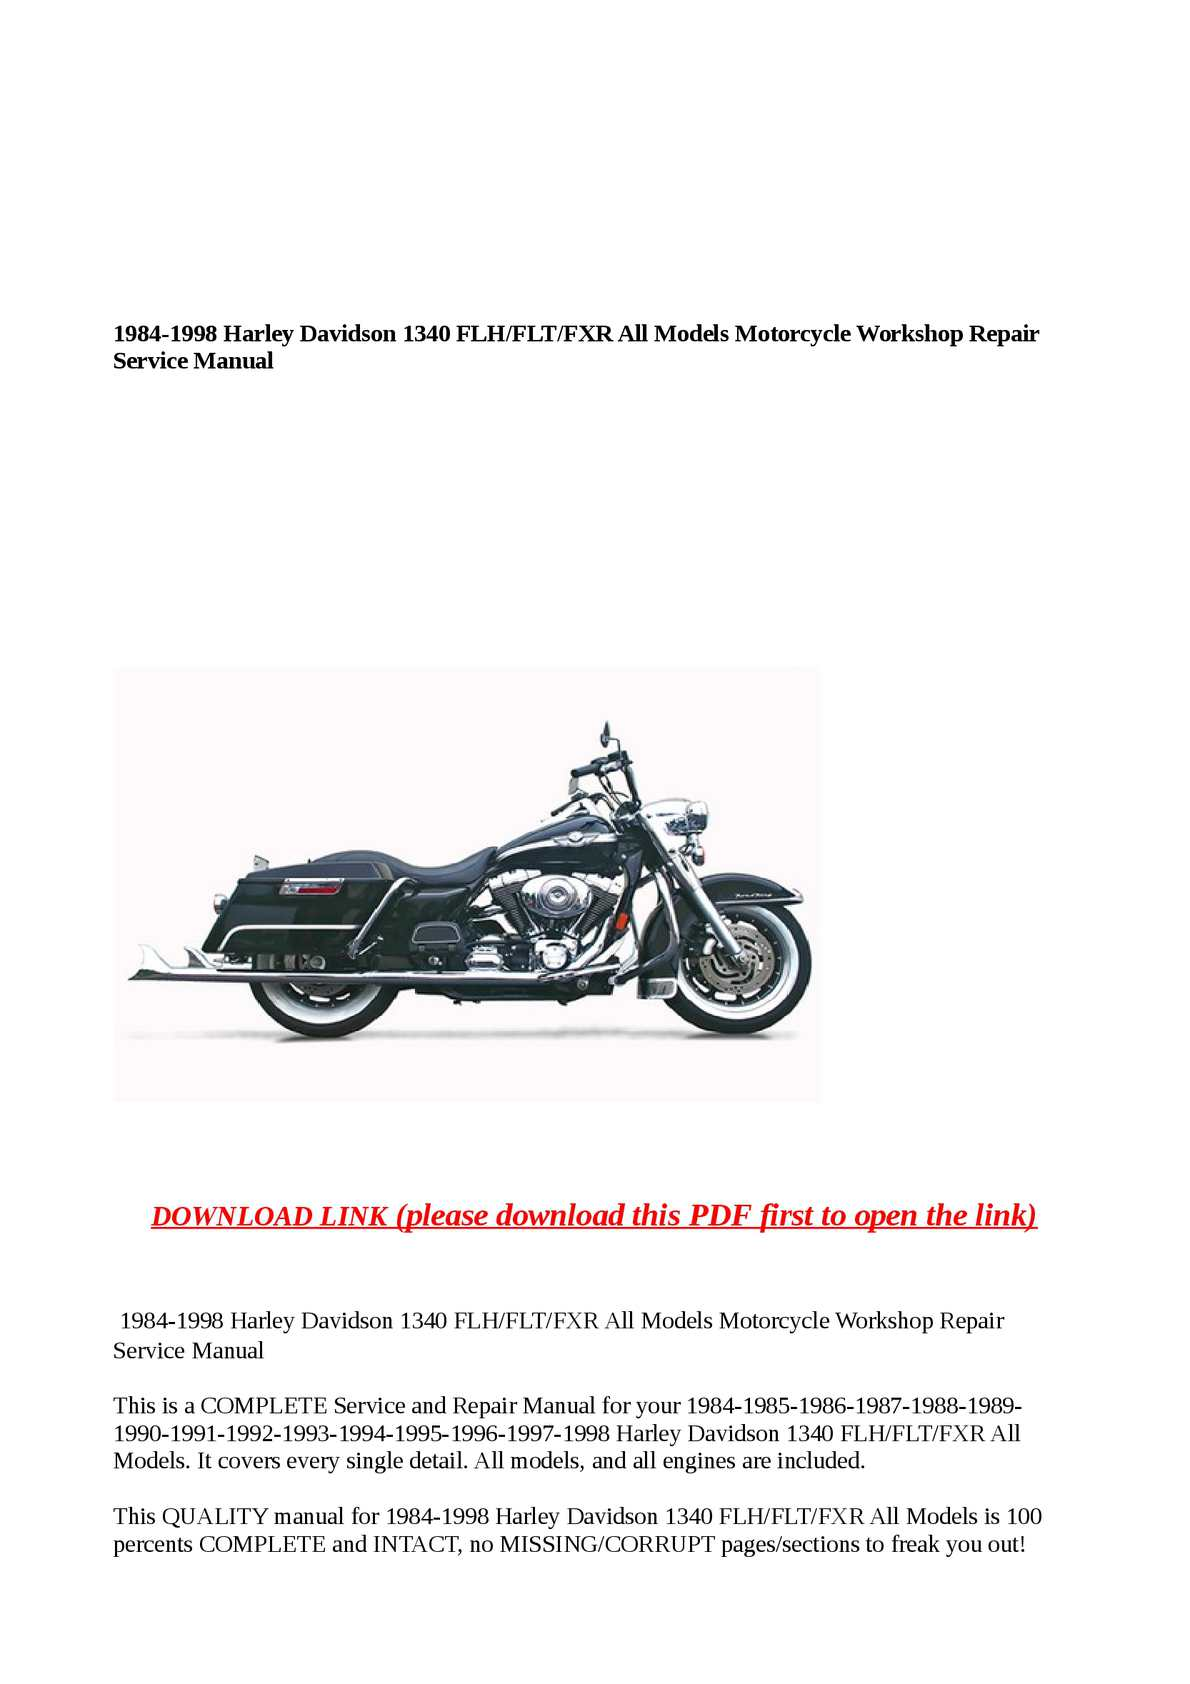 Motorcycle Wiring Diagrams Harley Davidson Fxrs Library Evo Engine Diagram P1 Calam O 1984 1998 1340 Flh Flt Fxr All Models